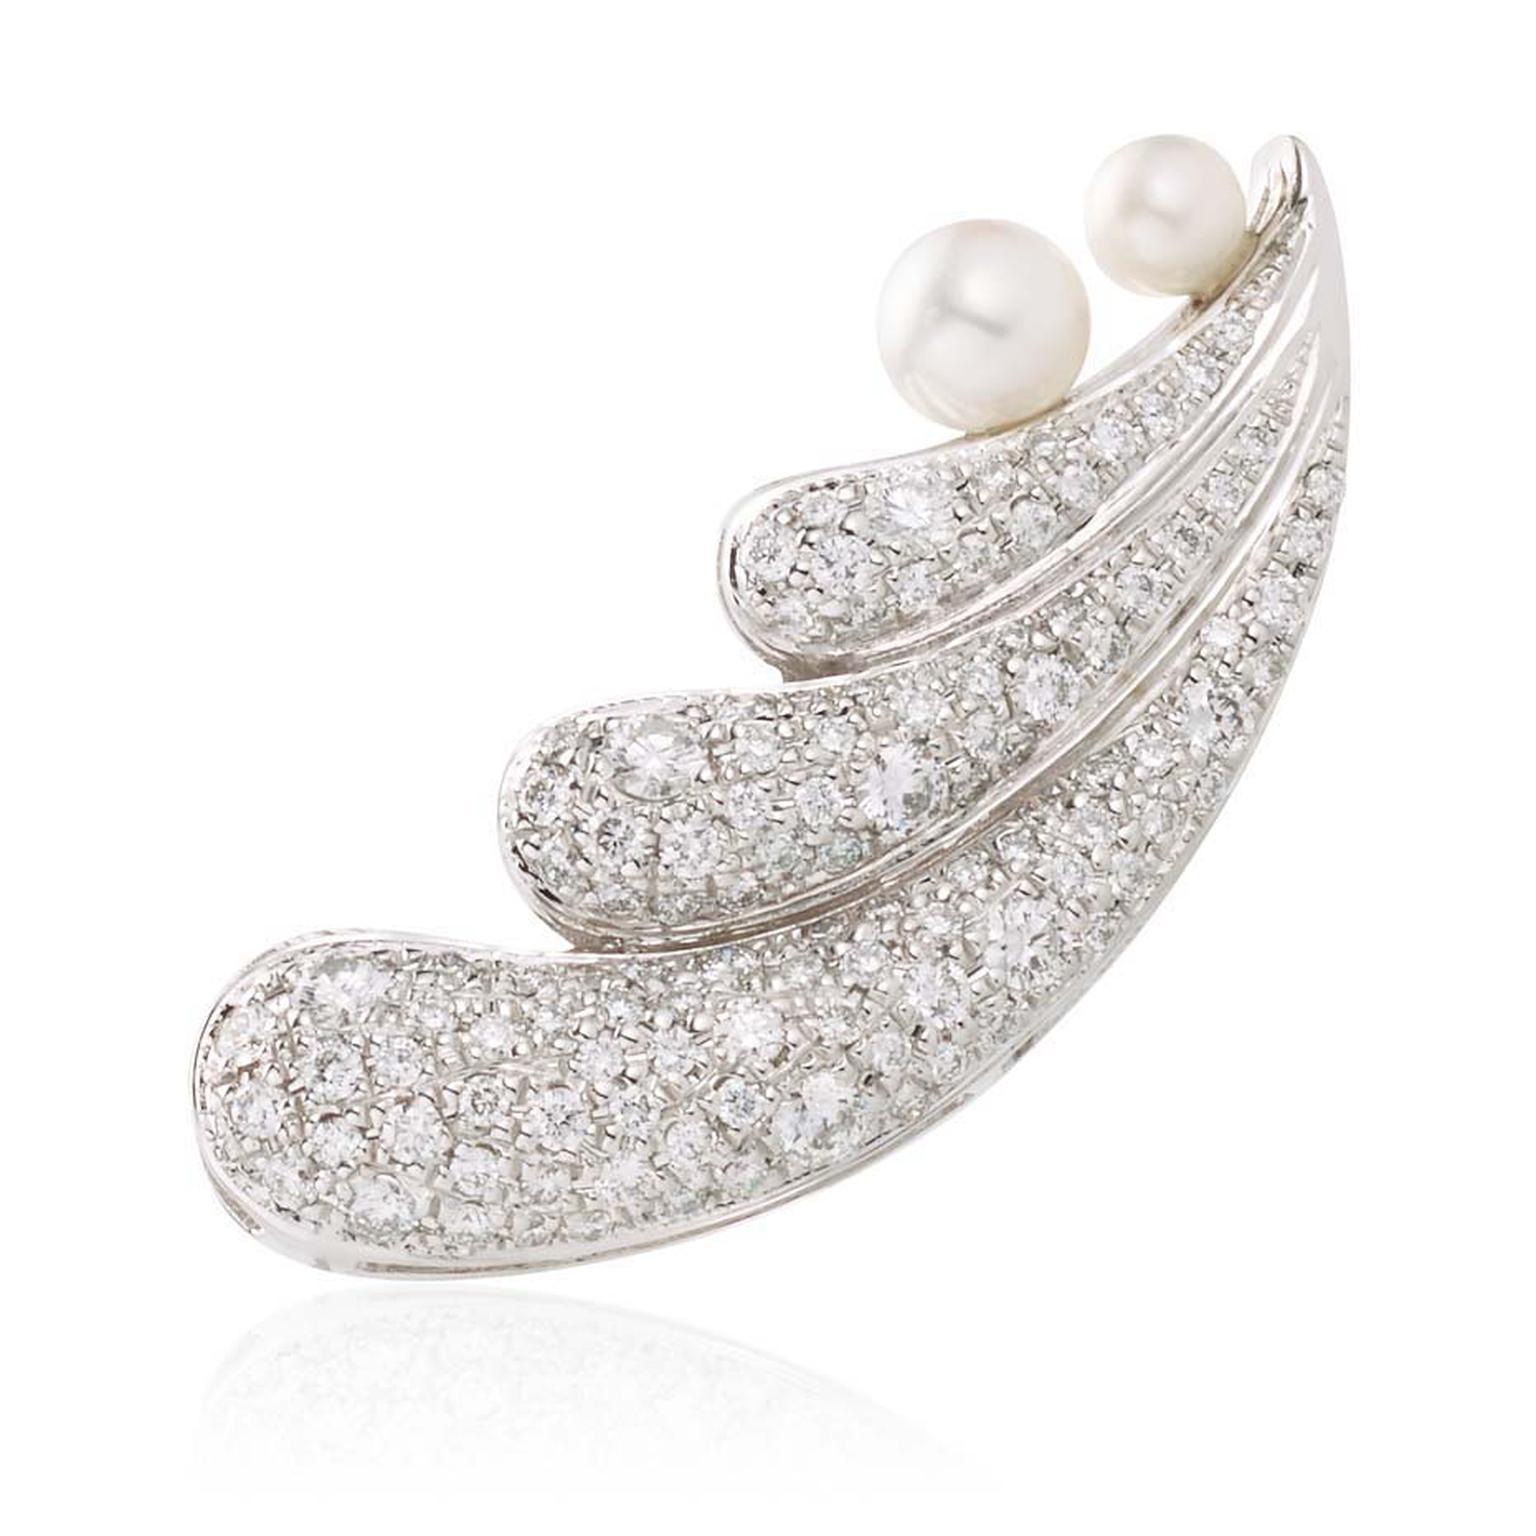 Nicholas Liu Cosmos earrings with diamonds and pearls.